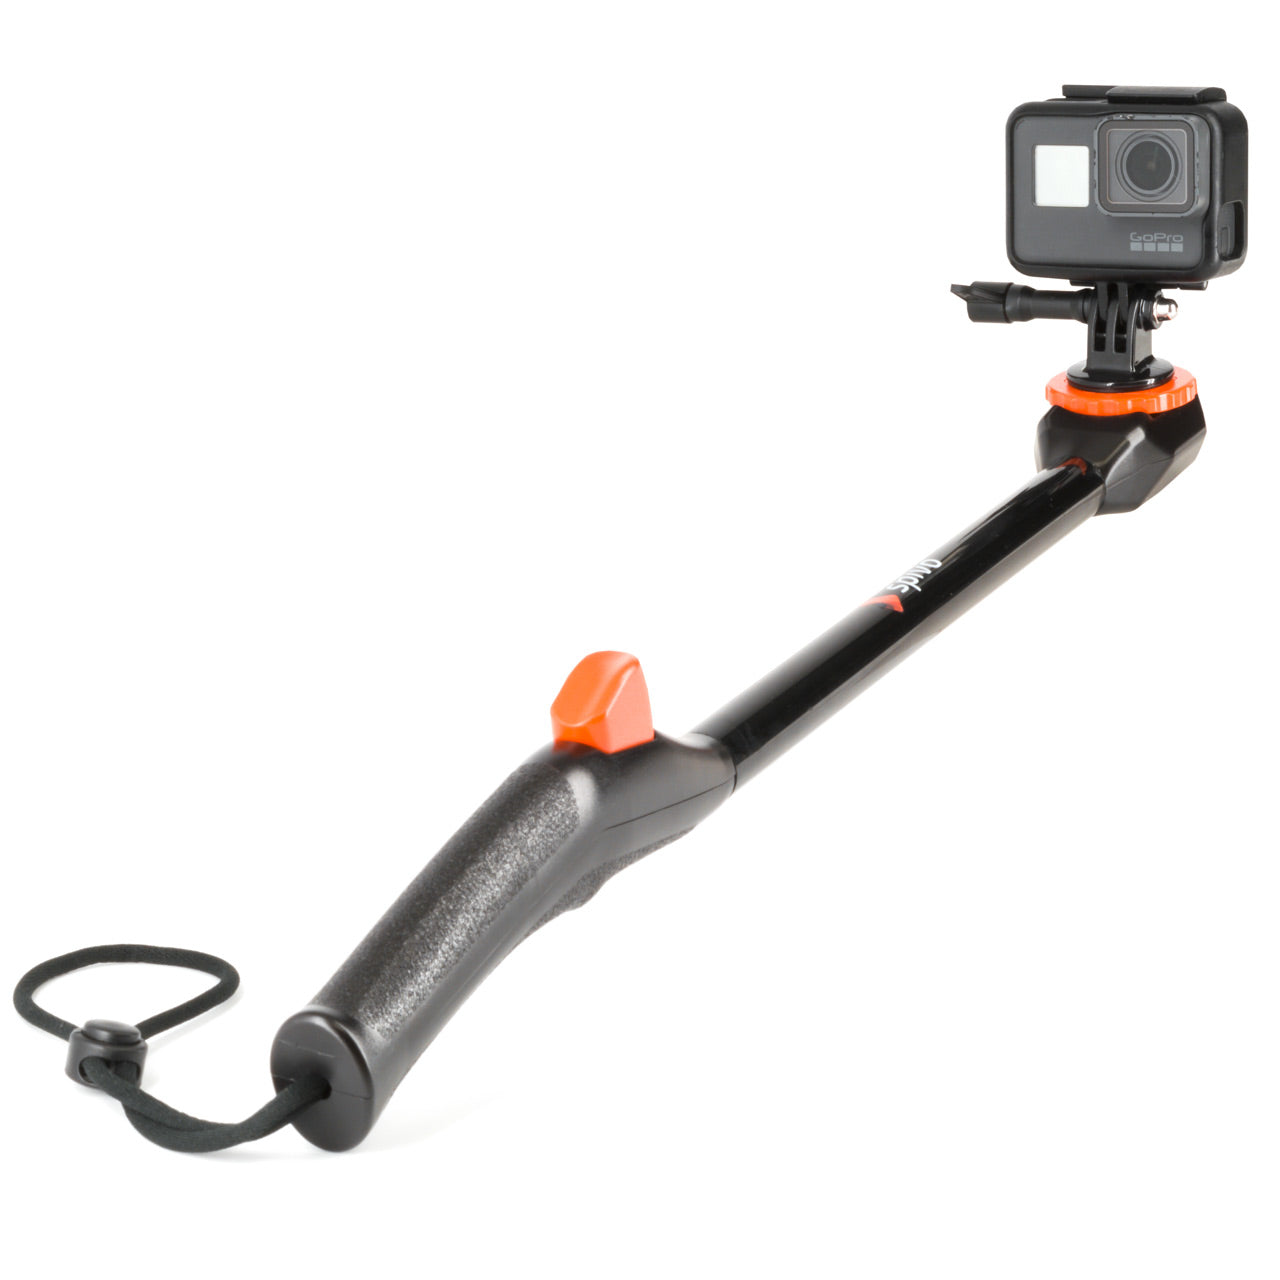 Spivo 360 with a GoPro mount included